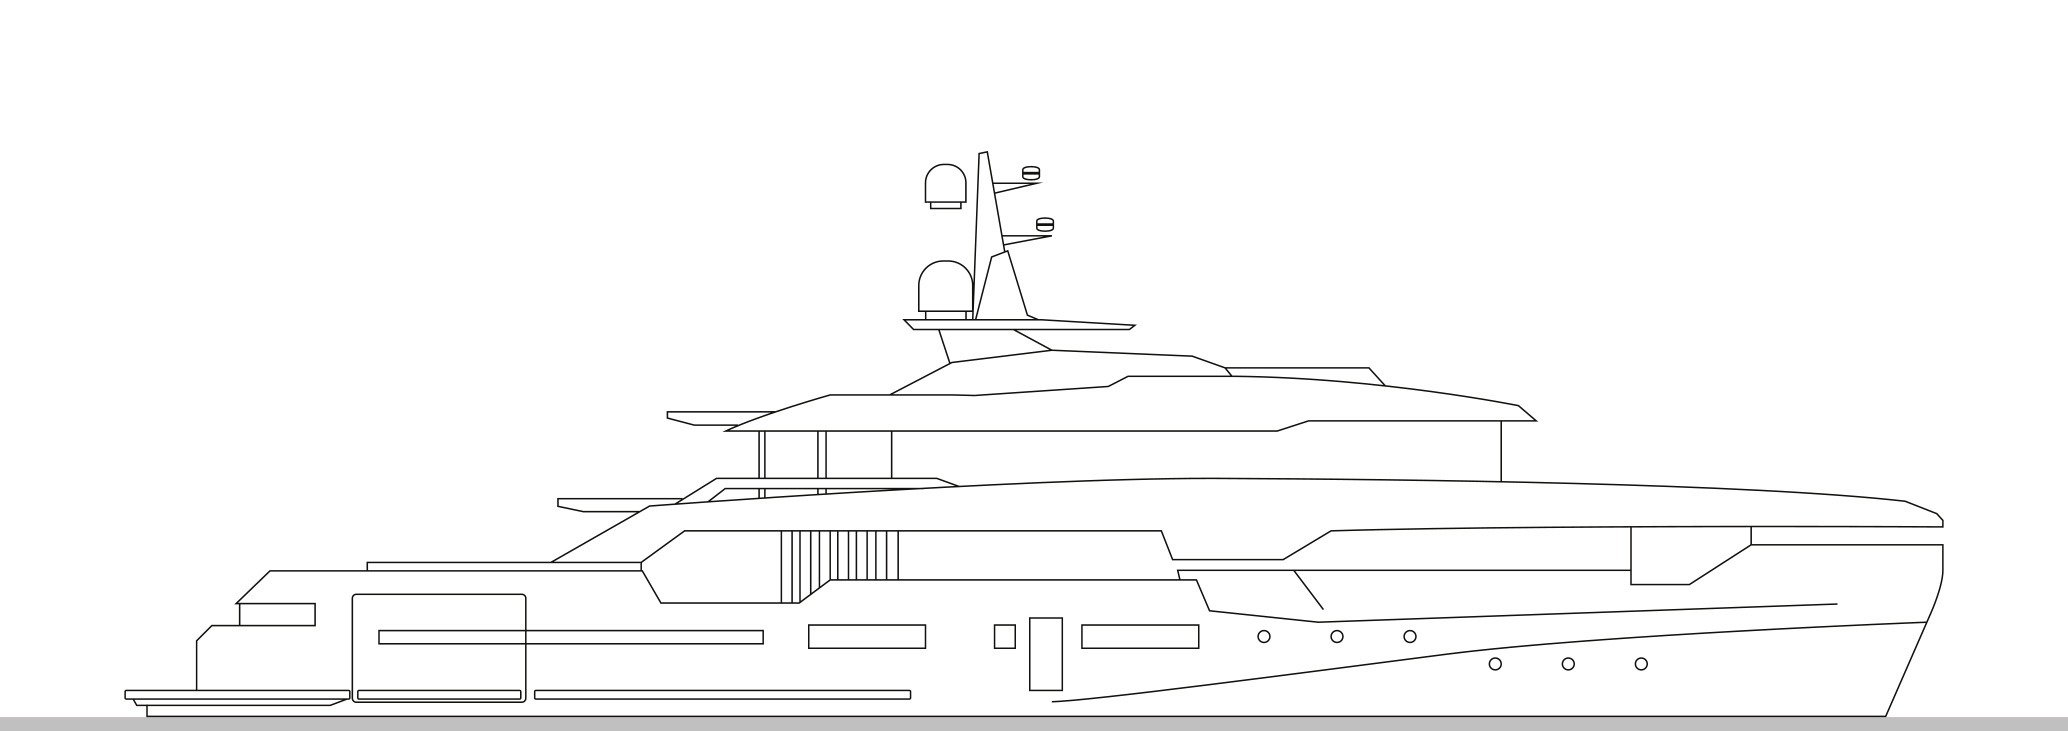 NEW PROJECT - K47off